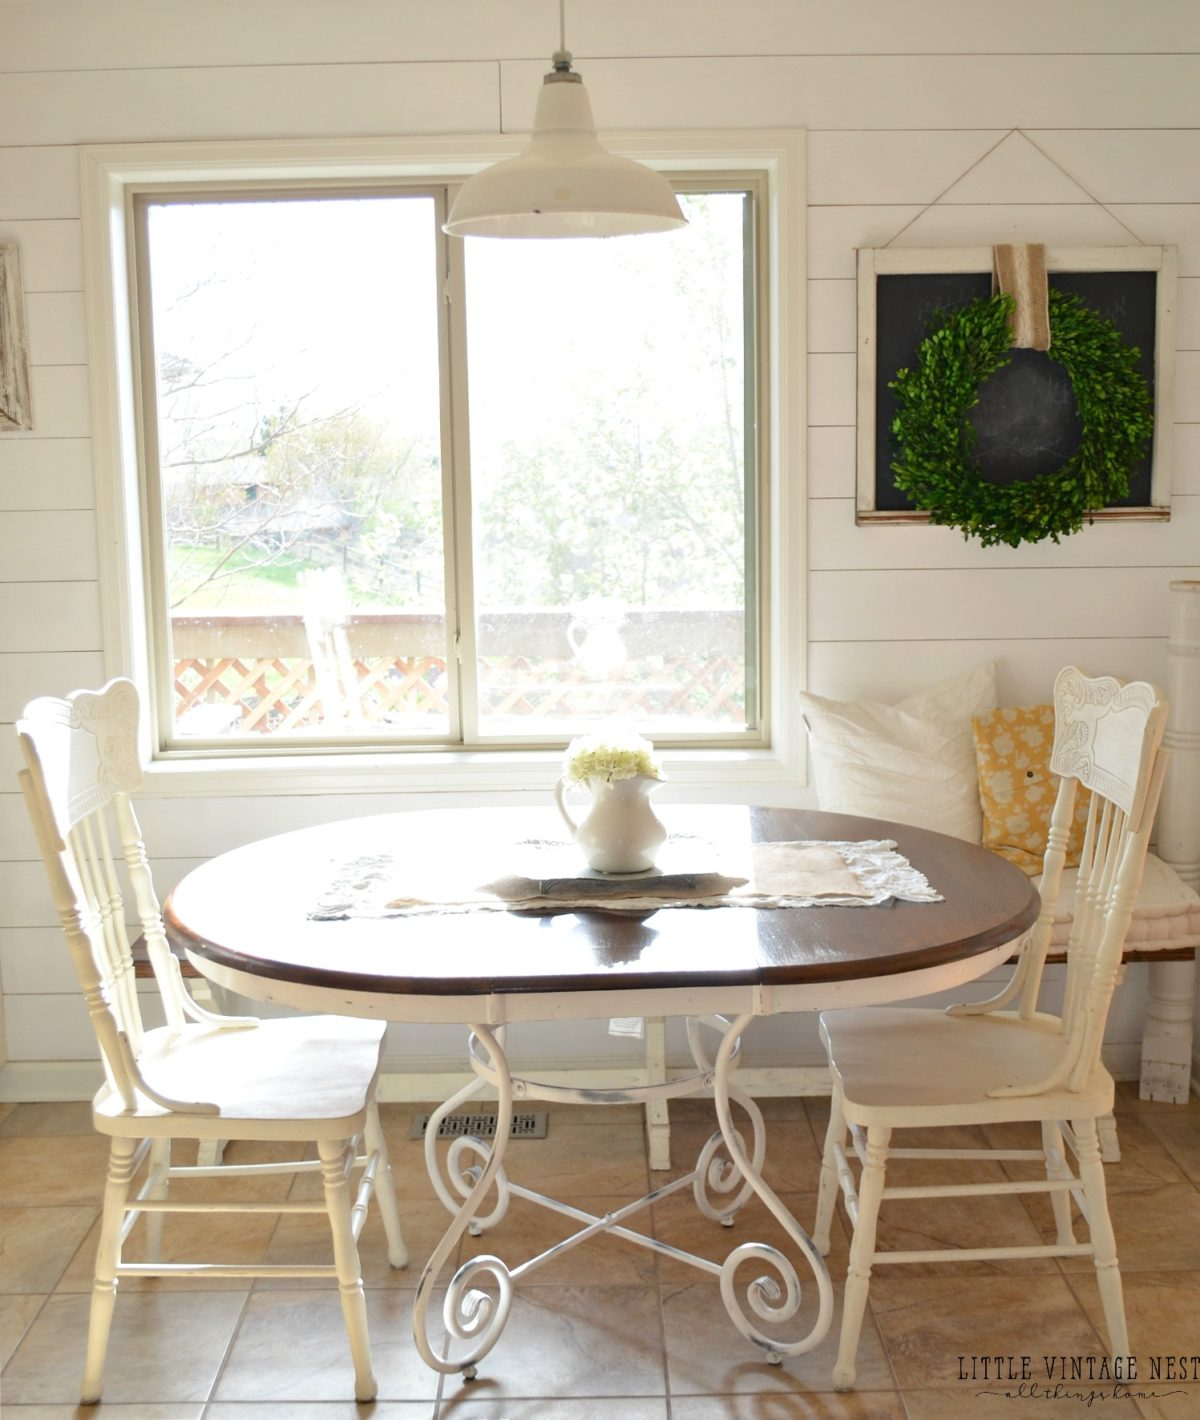 diy dining room table makeover. Farmhouse Breakfast Nook Diy Dining Room Table Makeover G